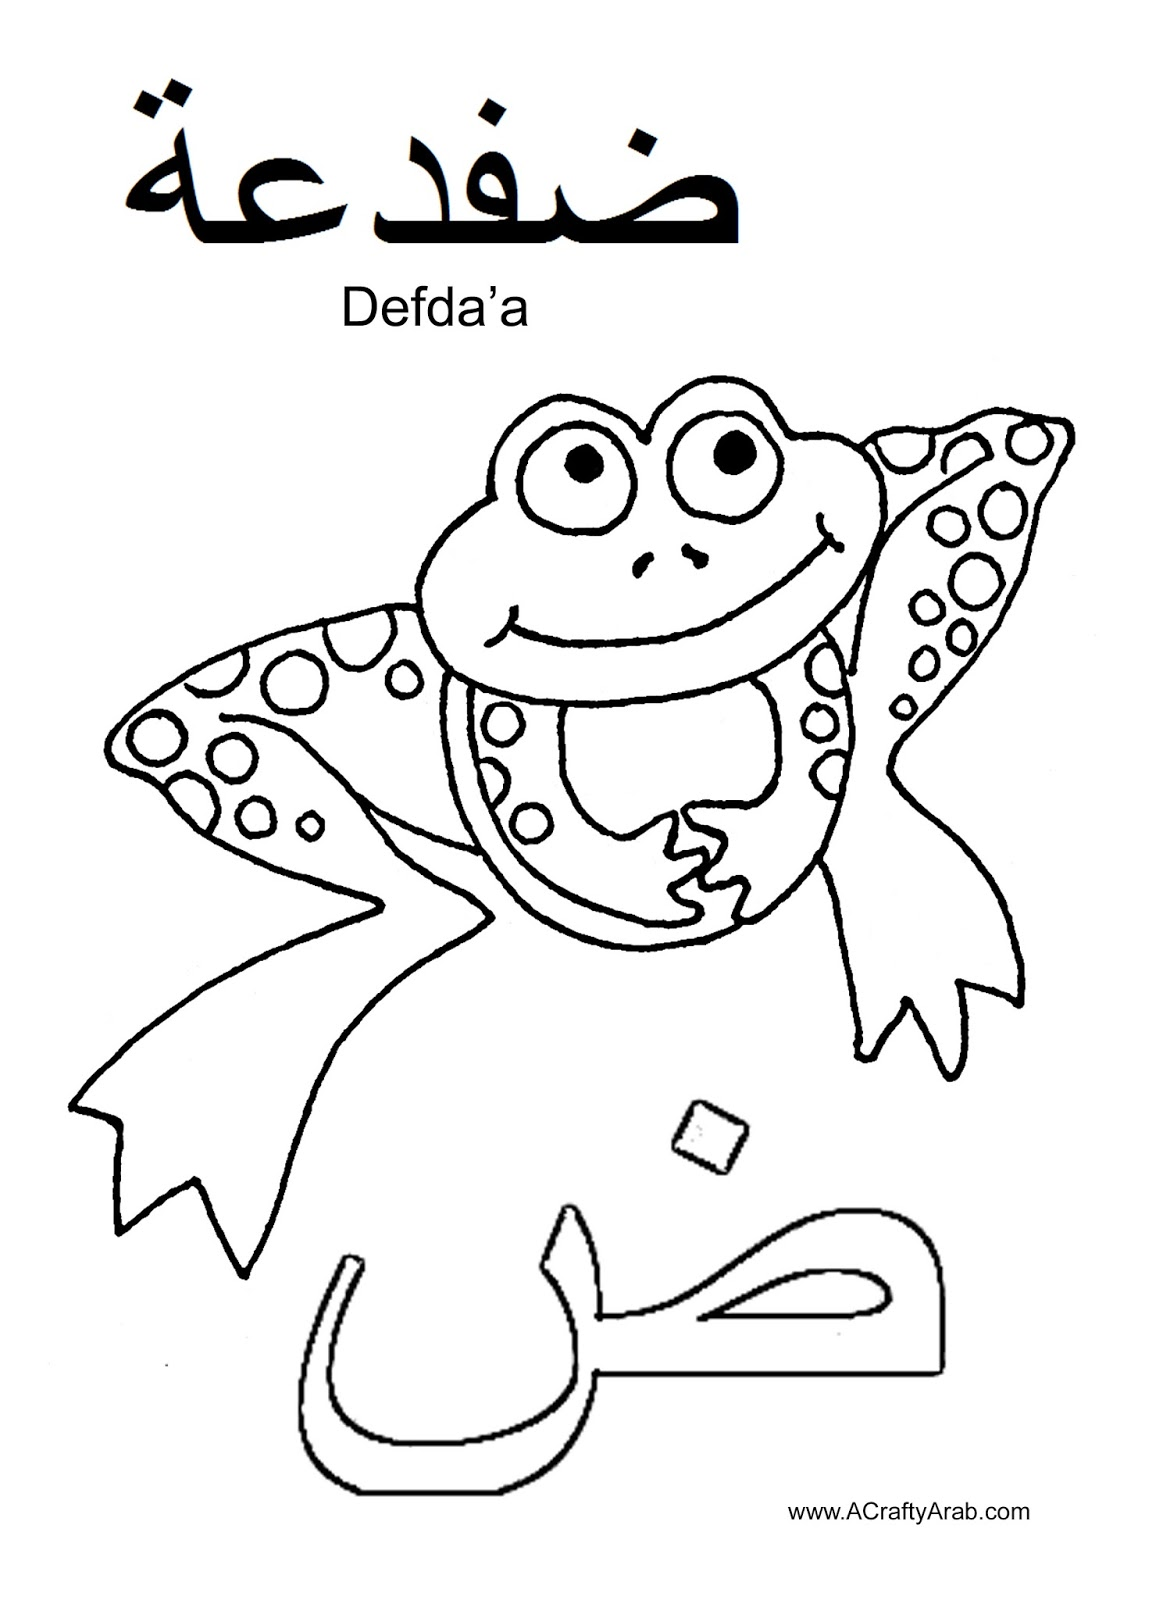 arabic alphabet coloring pages - a crafty arab arabic alphabet coloring pages dhad is